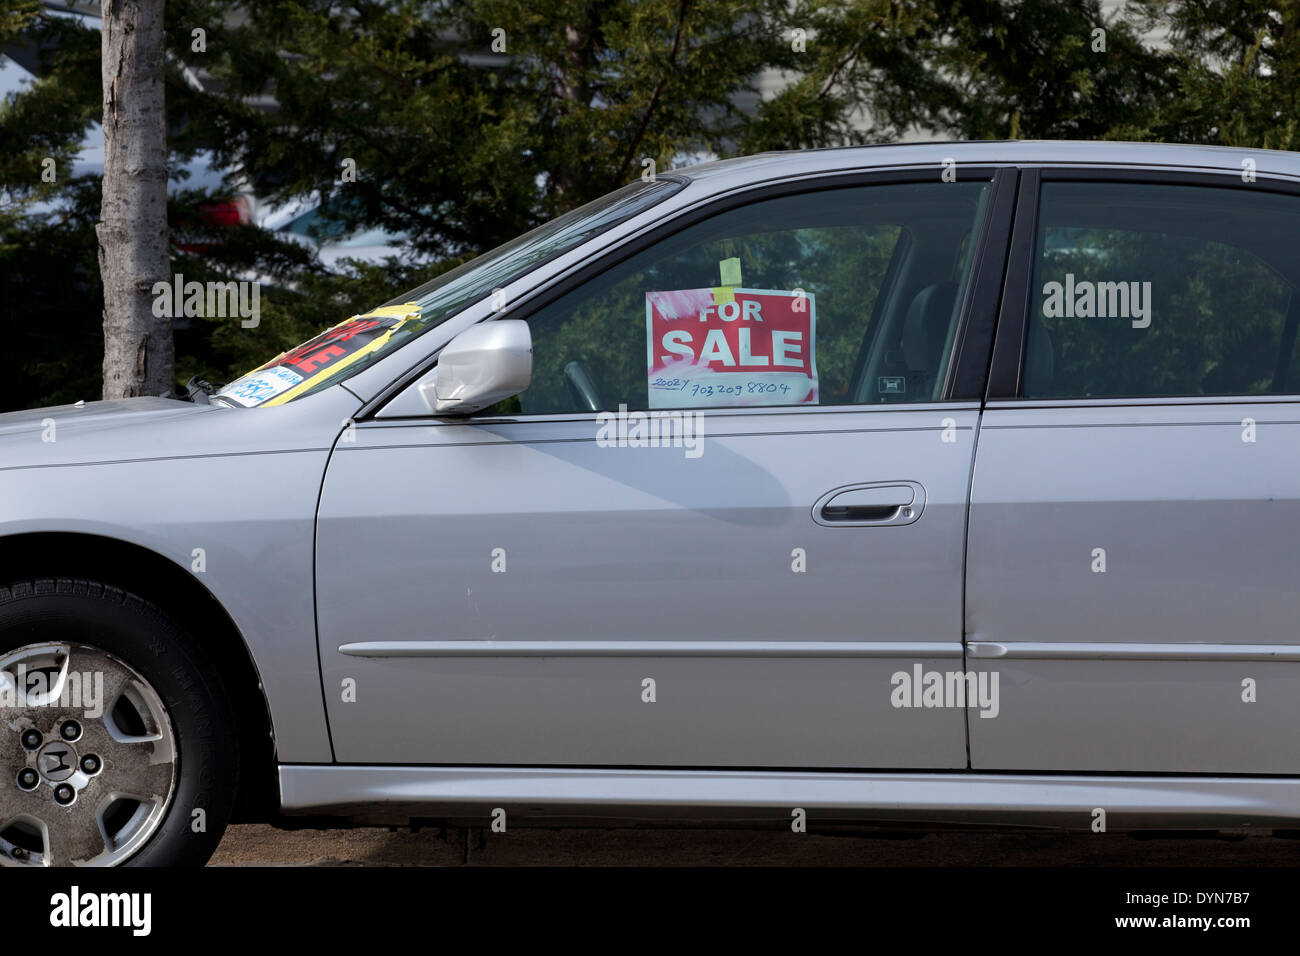 For Sale sign on car window Virginia USA Photo Royalty – Free for Sale Signs for Cars